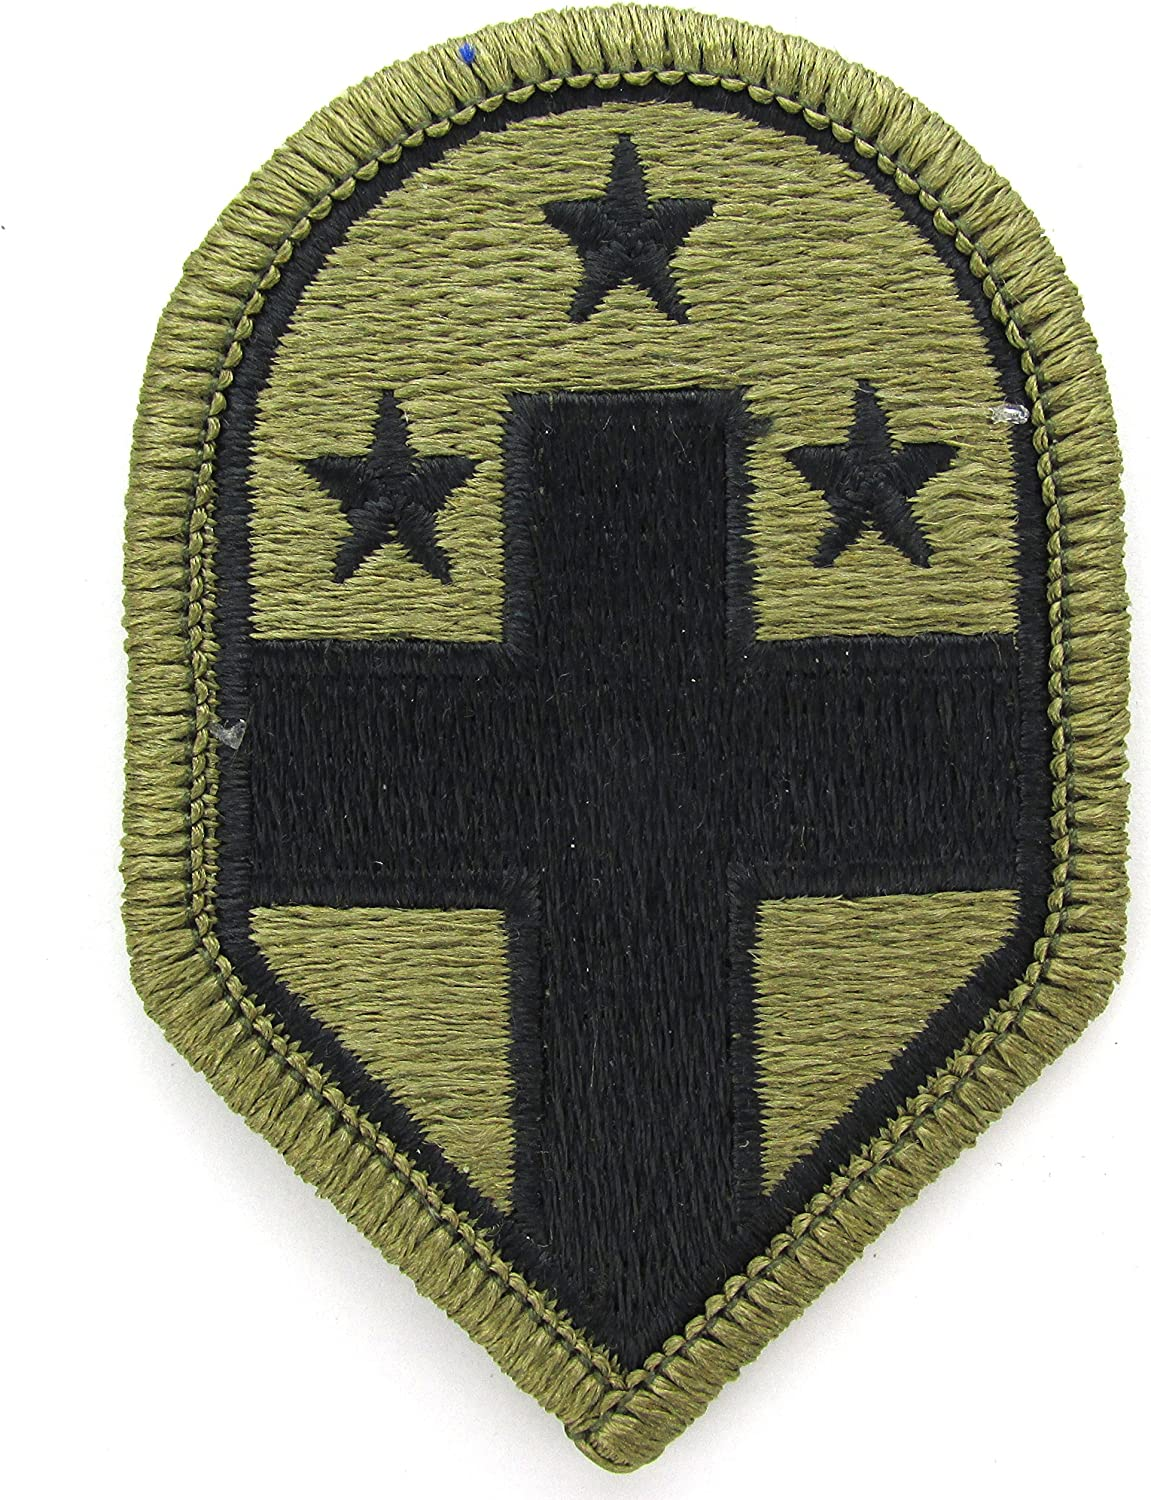 FULL COLOR 332ND MEDICAL BRIGADE PATCH